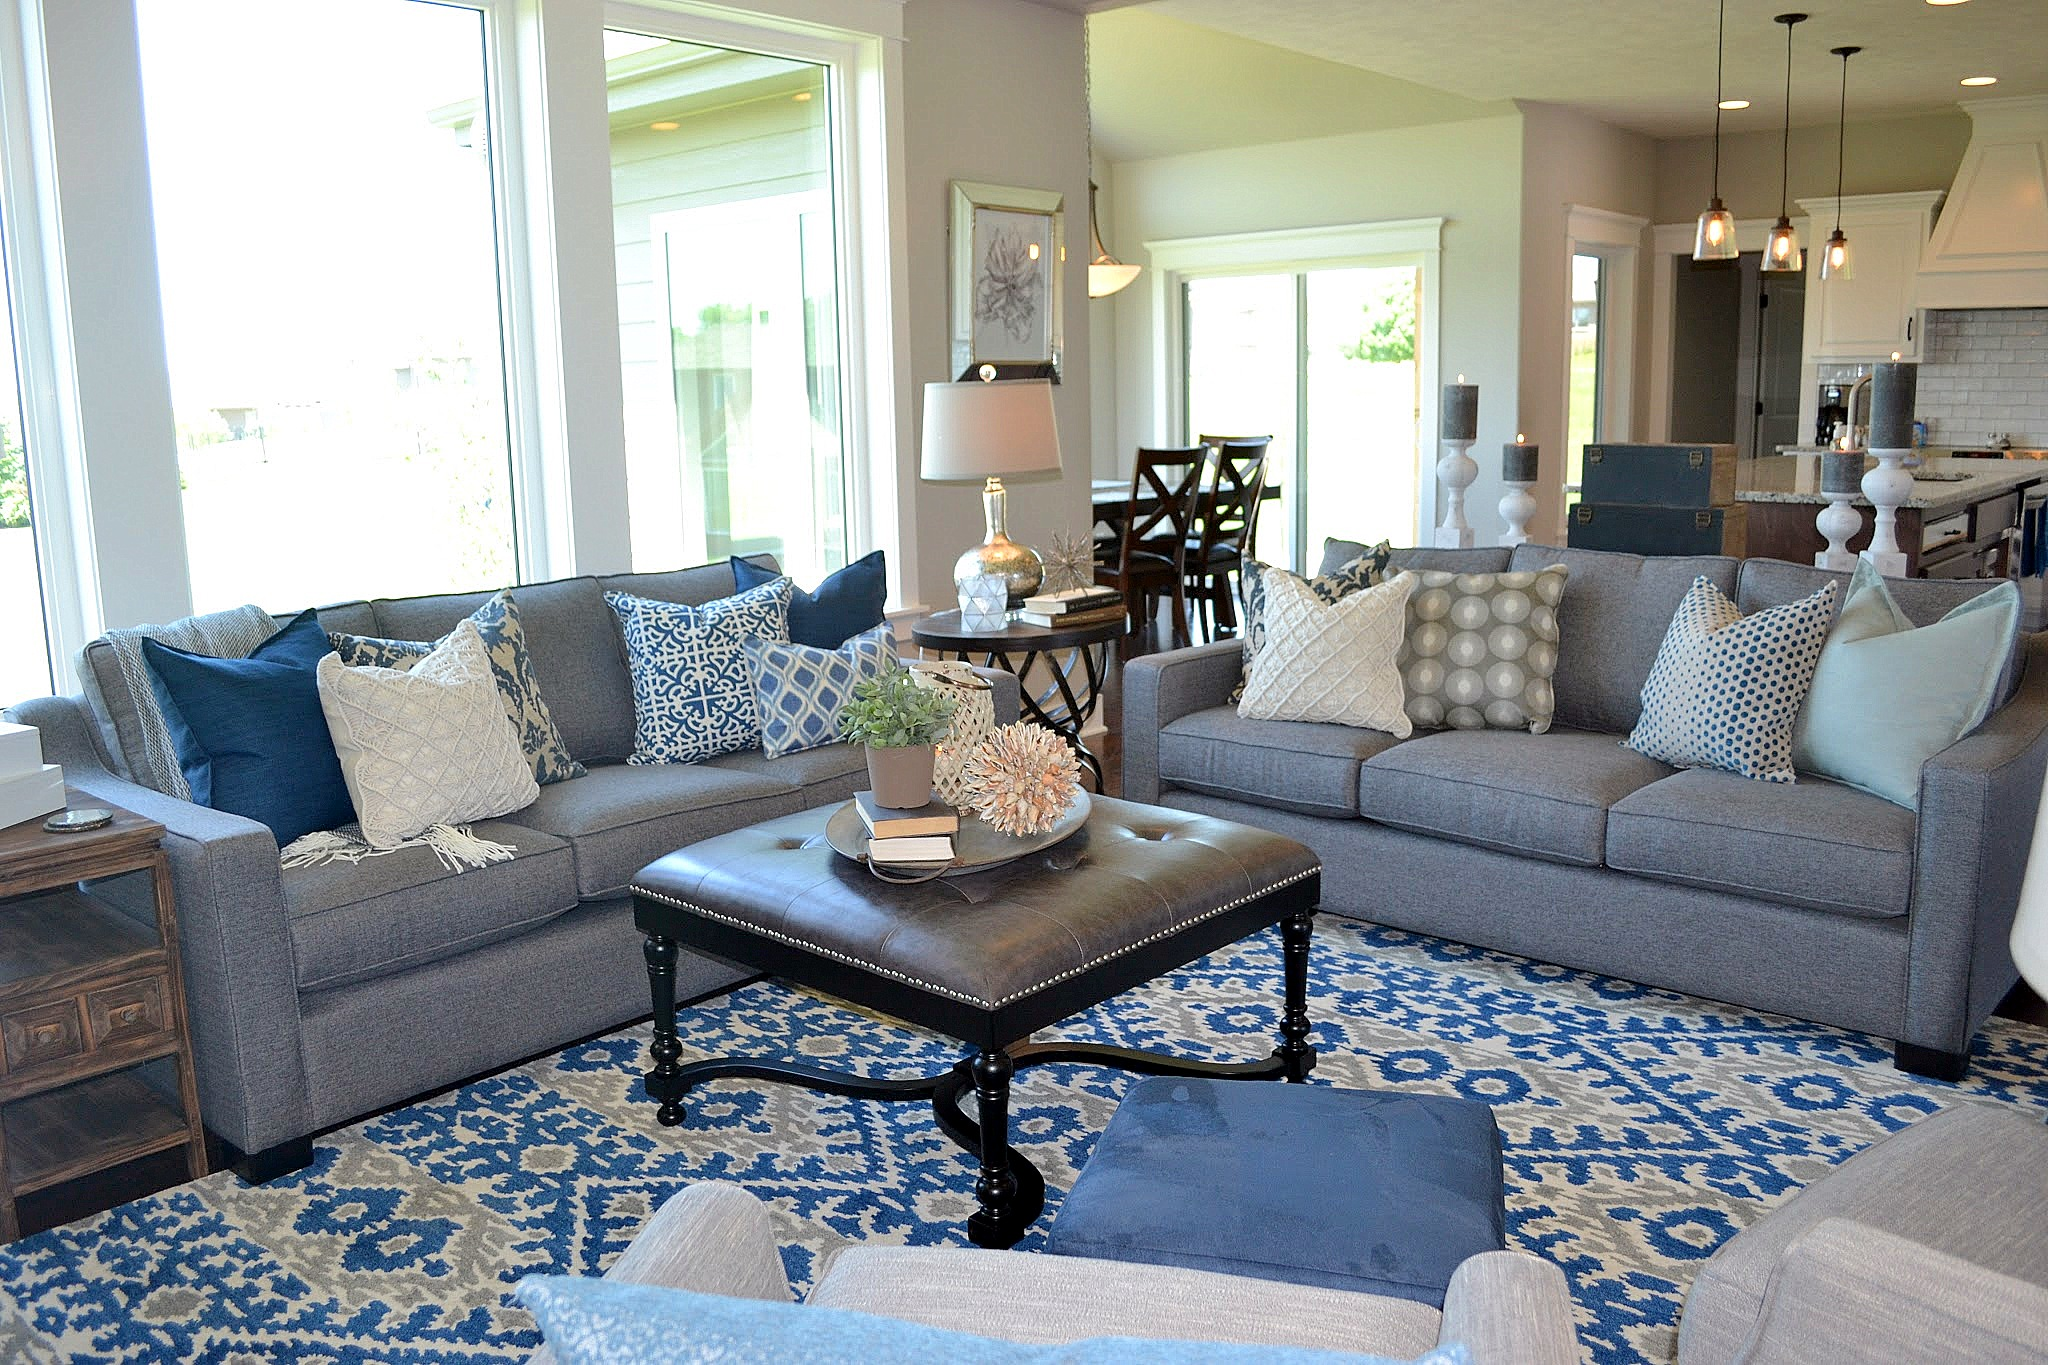 Terrific Fluff Interior Design Blue Living Room With Two Sofas Dailytribune Chair Design For Home Dailytribuneorg